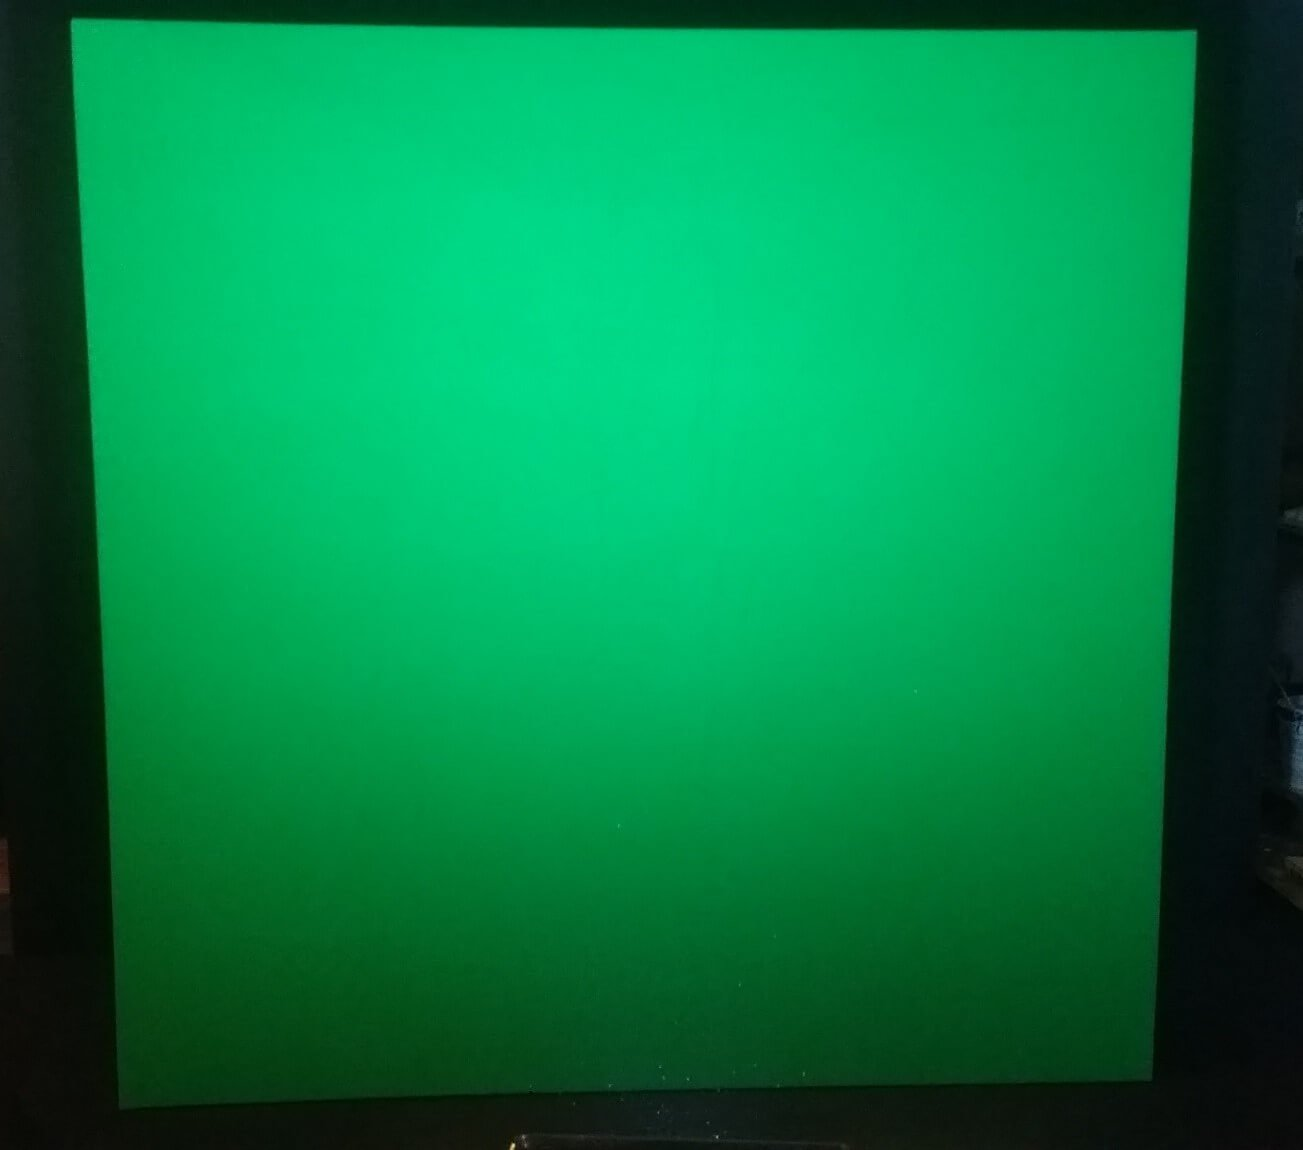 Green Chroma Key